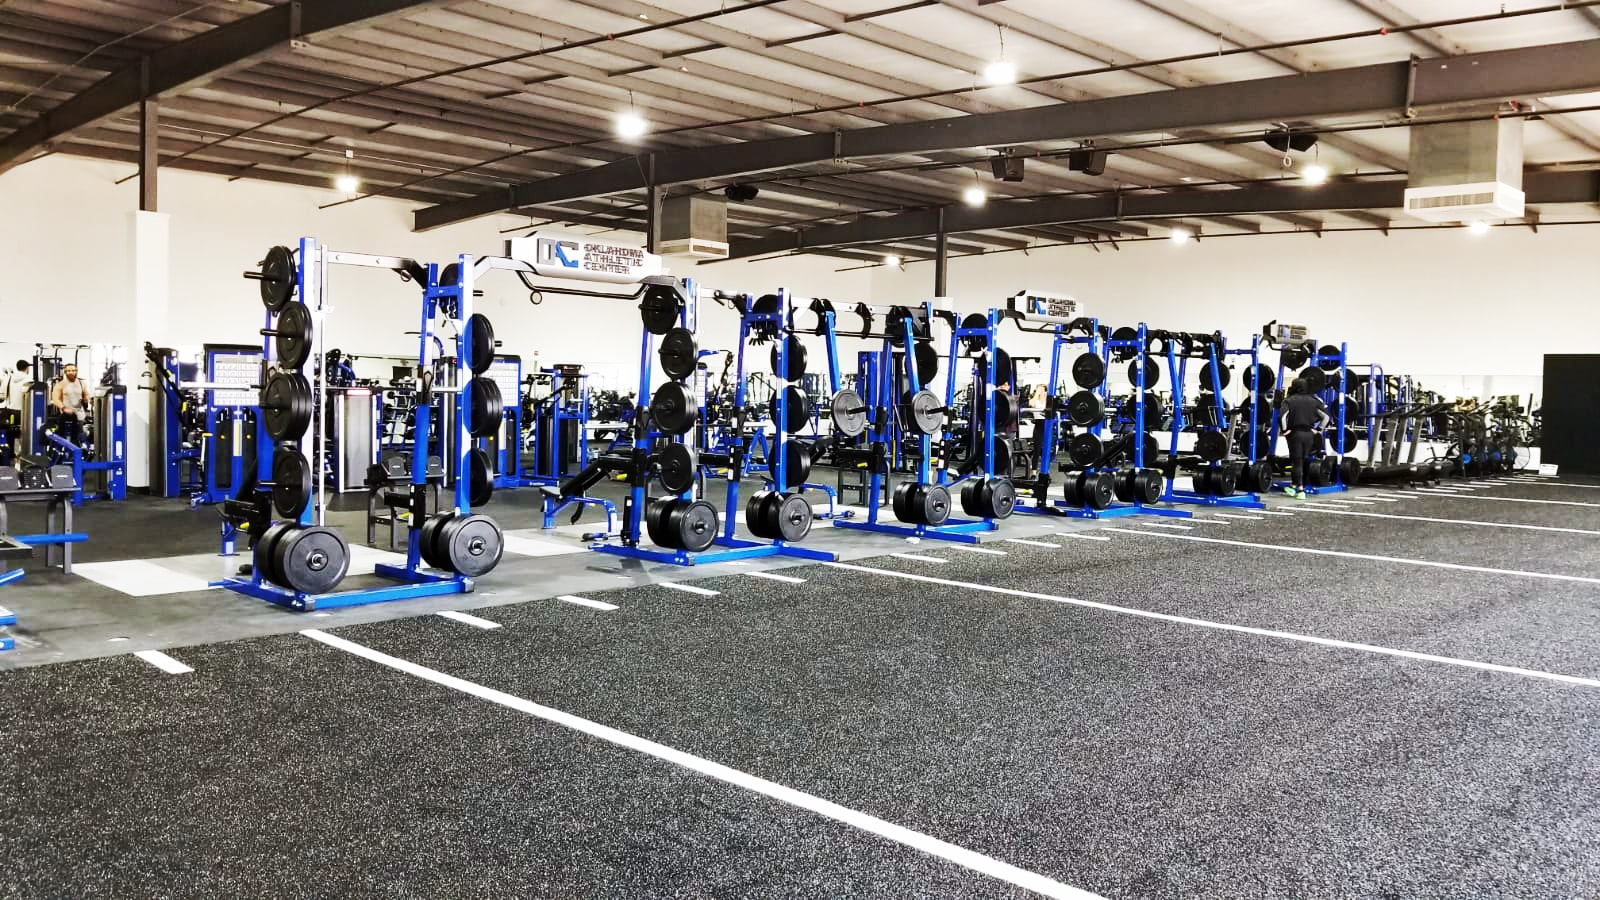 TuffStuff Half Rack at Oklahoma Athletic Center Fitness & Performance Gym